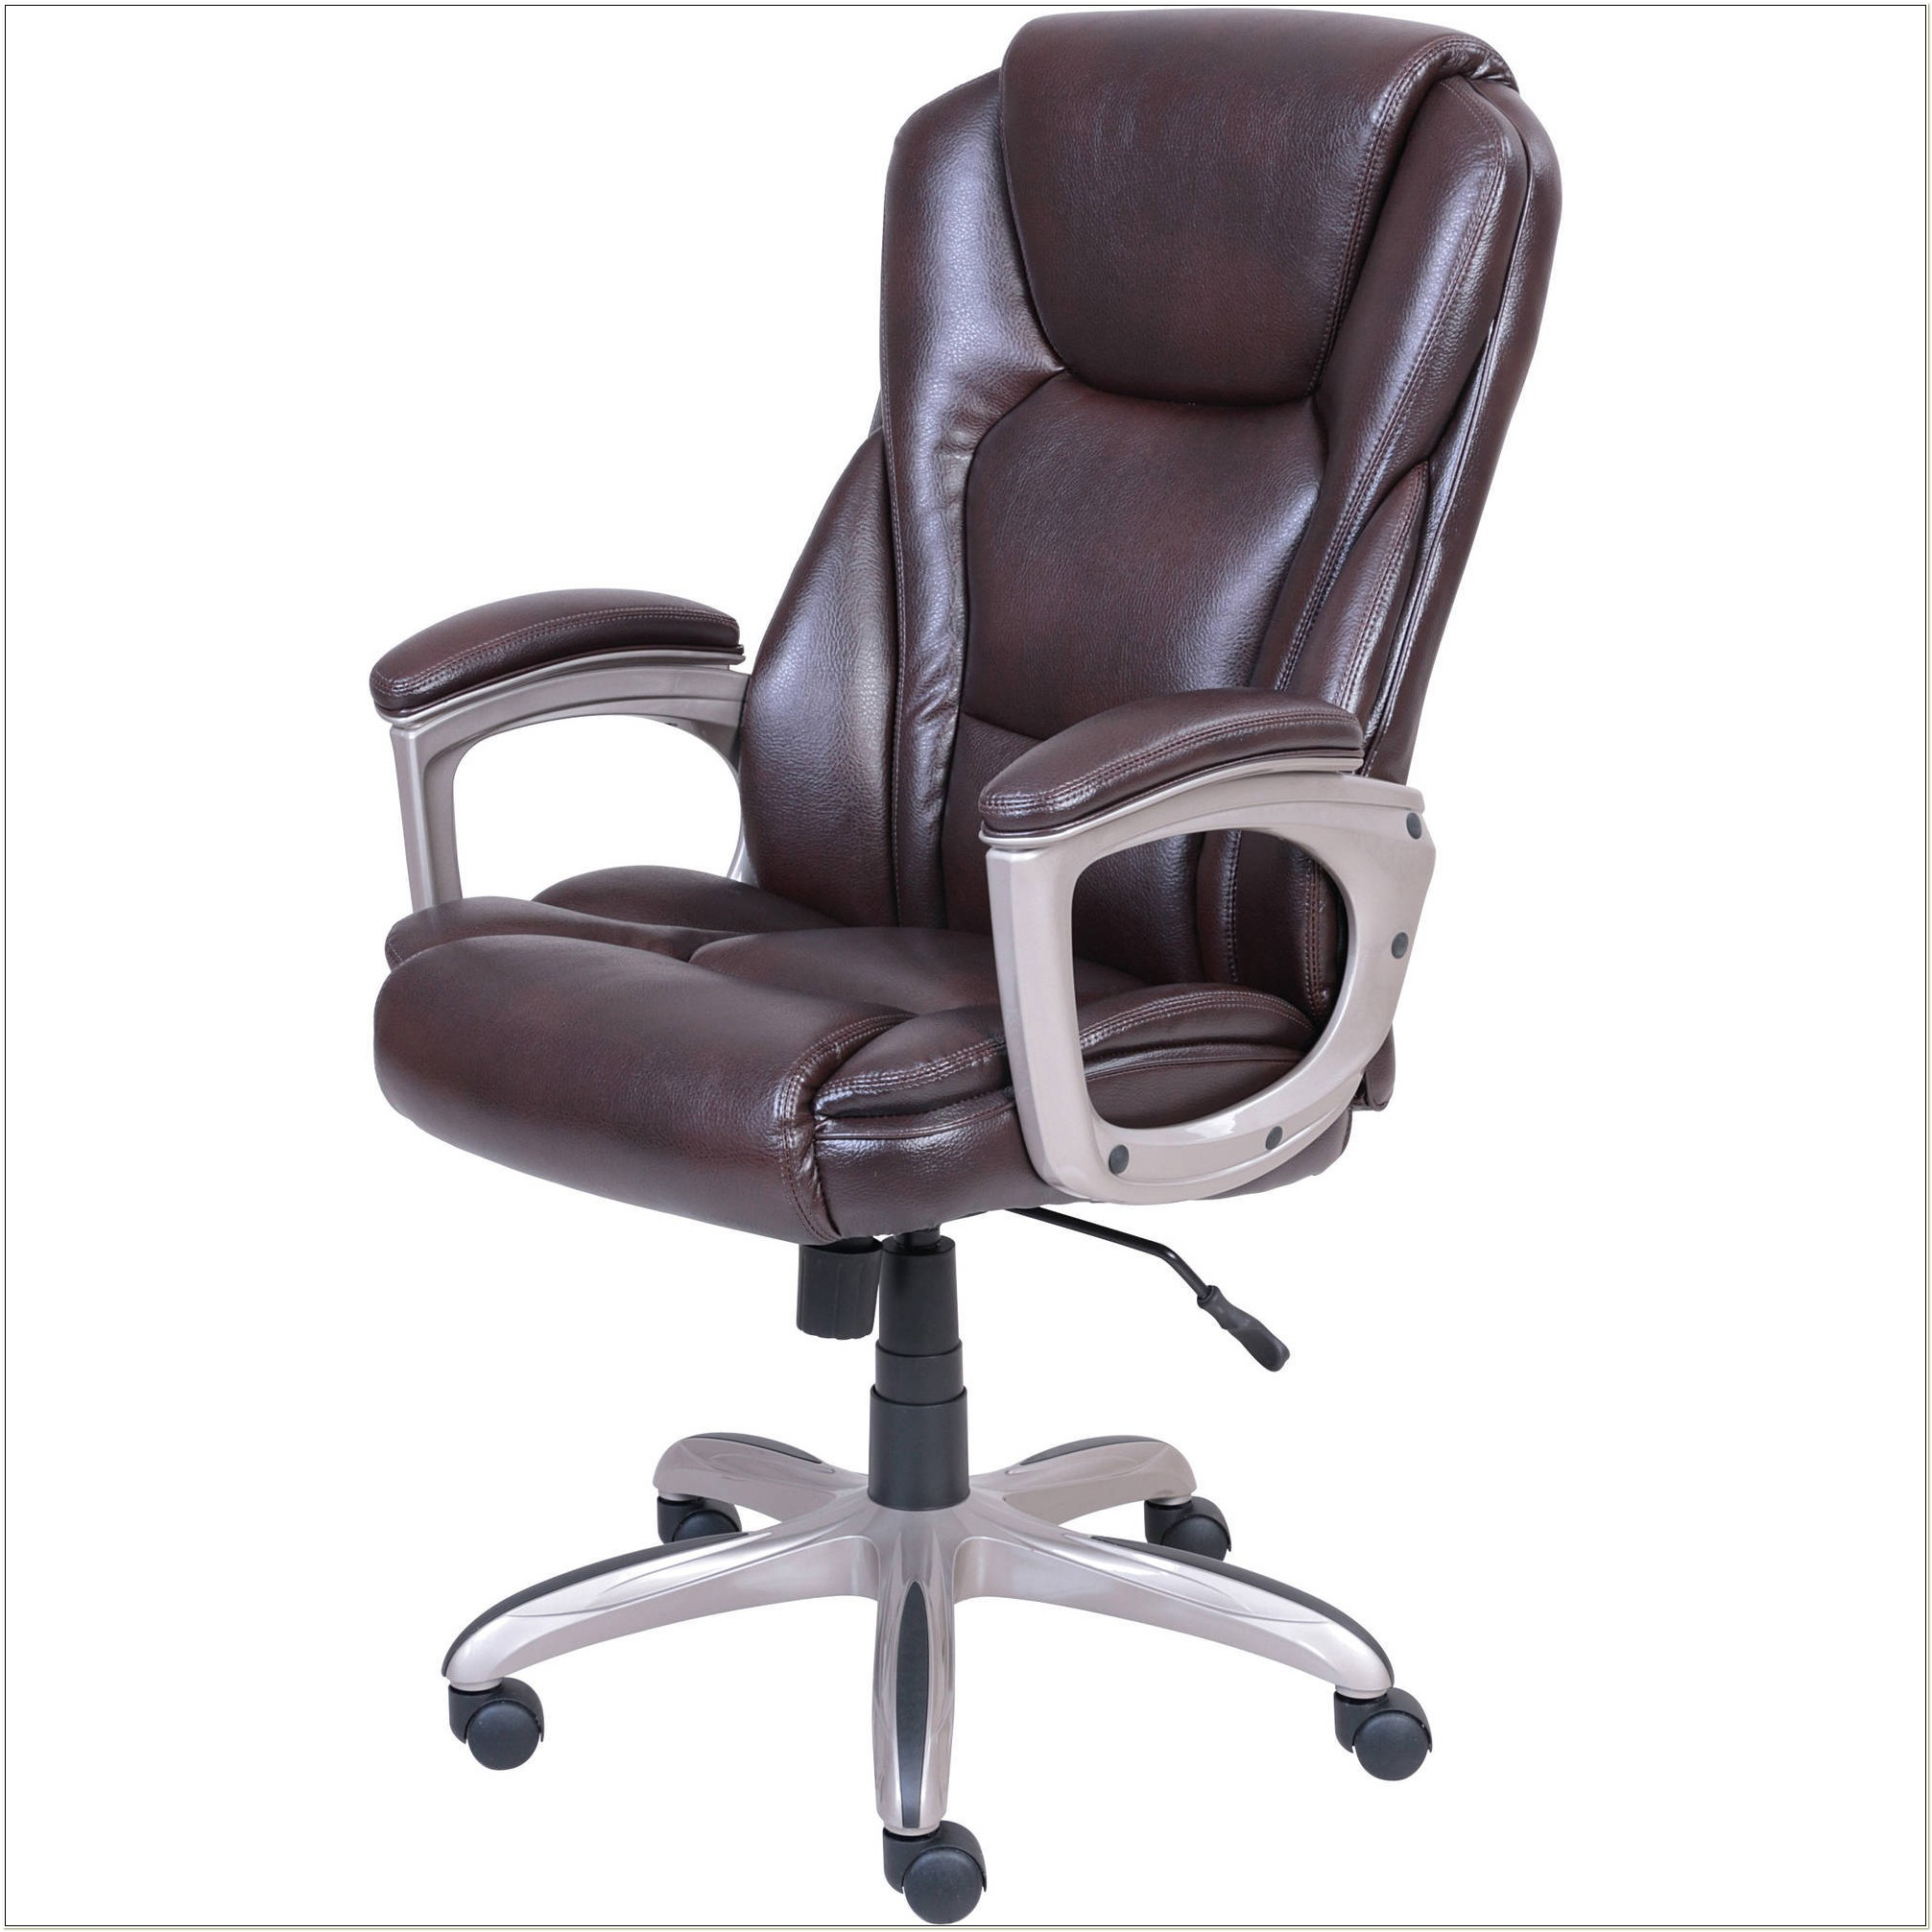 Broyhill Office Chair At Walmart